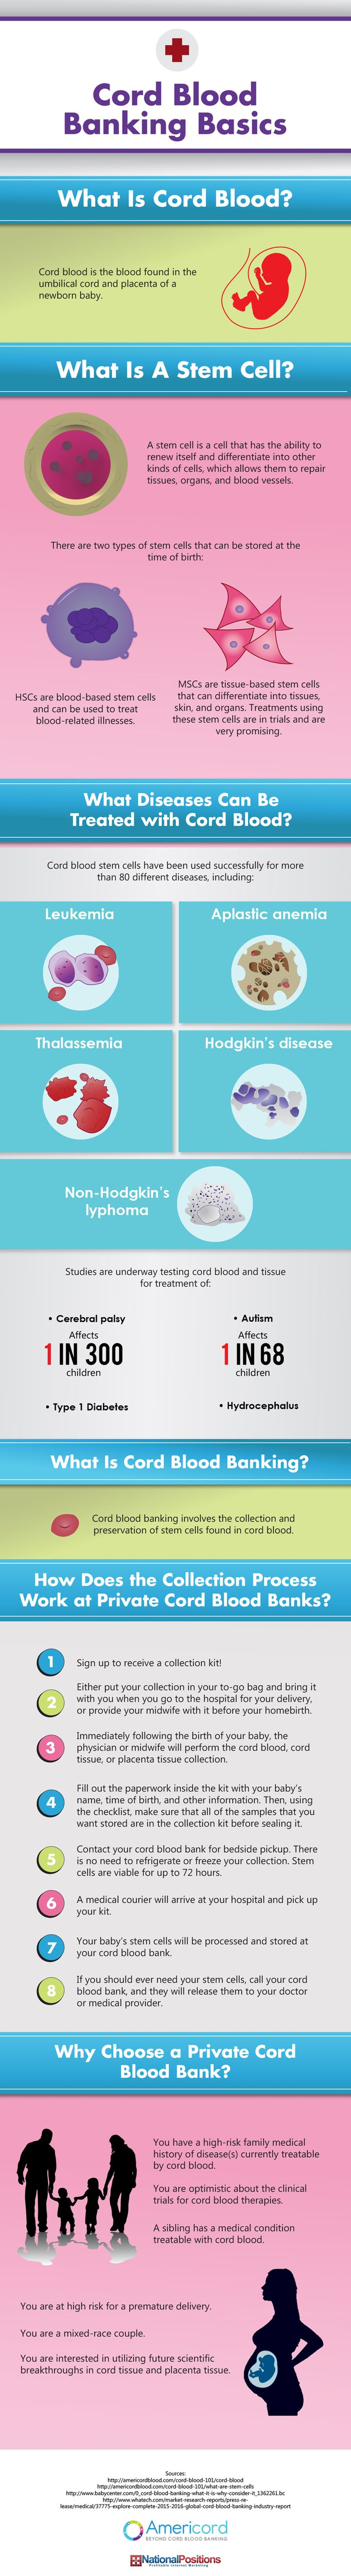 #Infographic: Cord Blood Banking Basics #GCBC